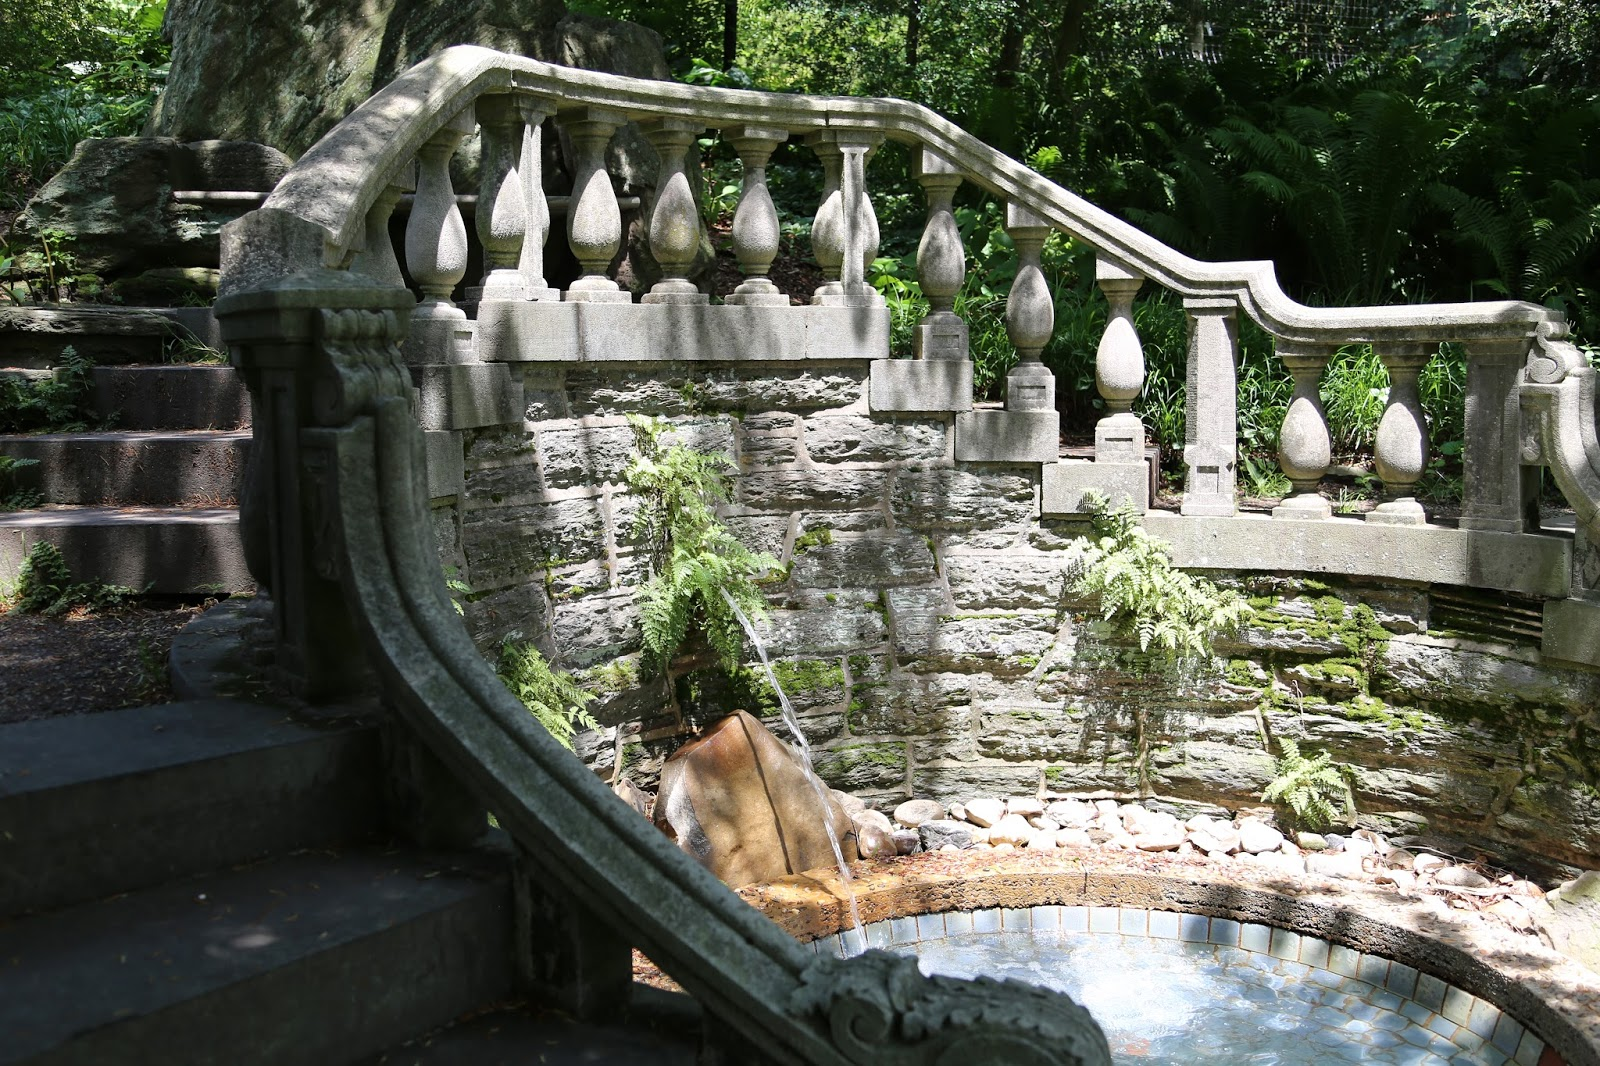 3. The Long Fountain The Creation Of The Long Fountain Was Inspired By A  Trip The Morrises Took To The Alhambra In Spain. After The Visit, John And  Lydia ...